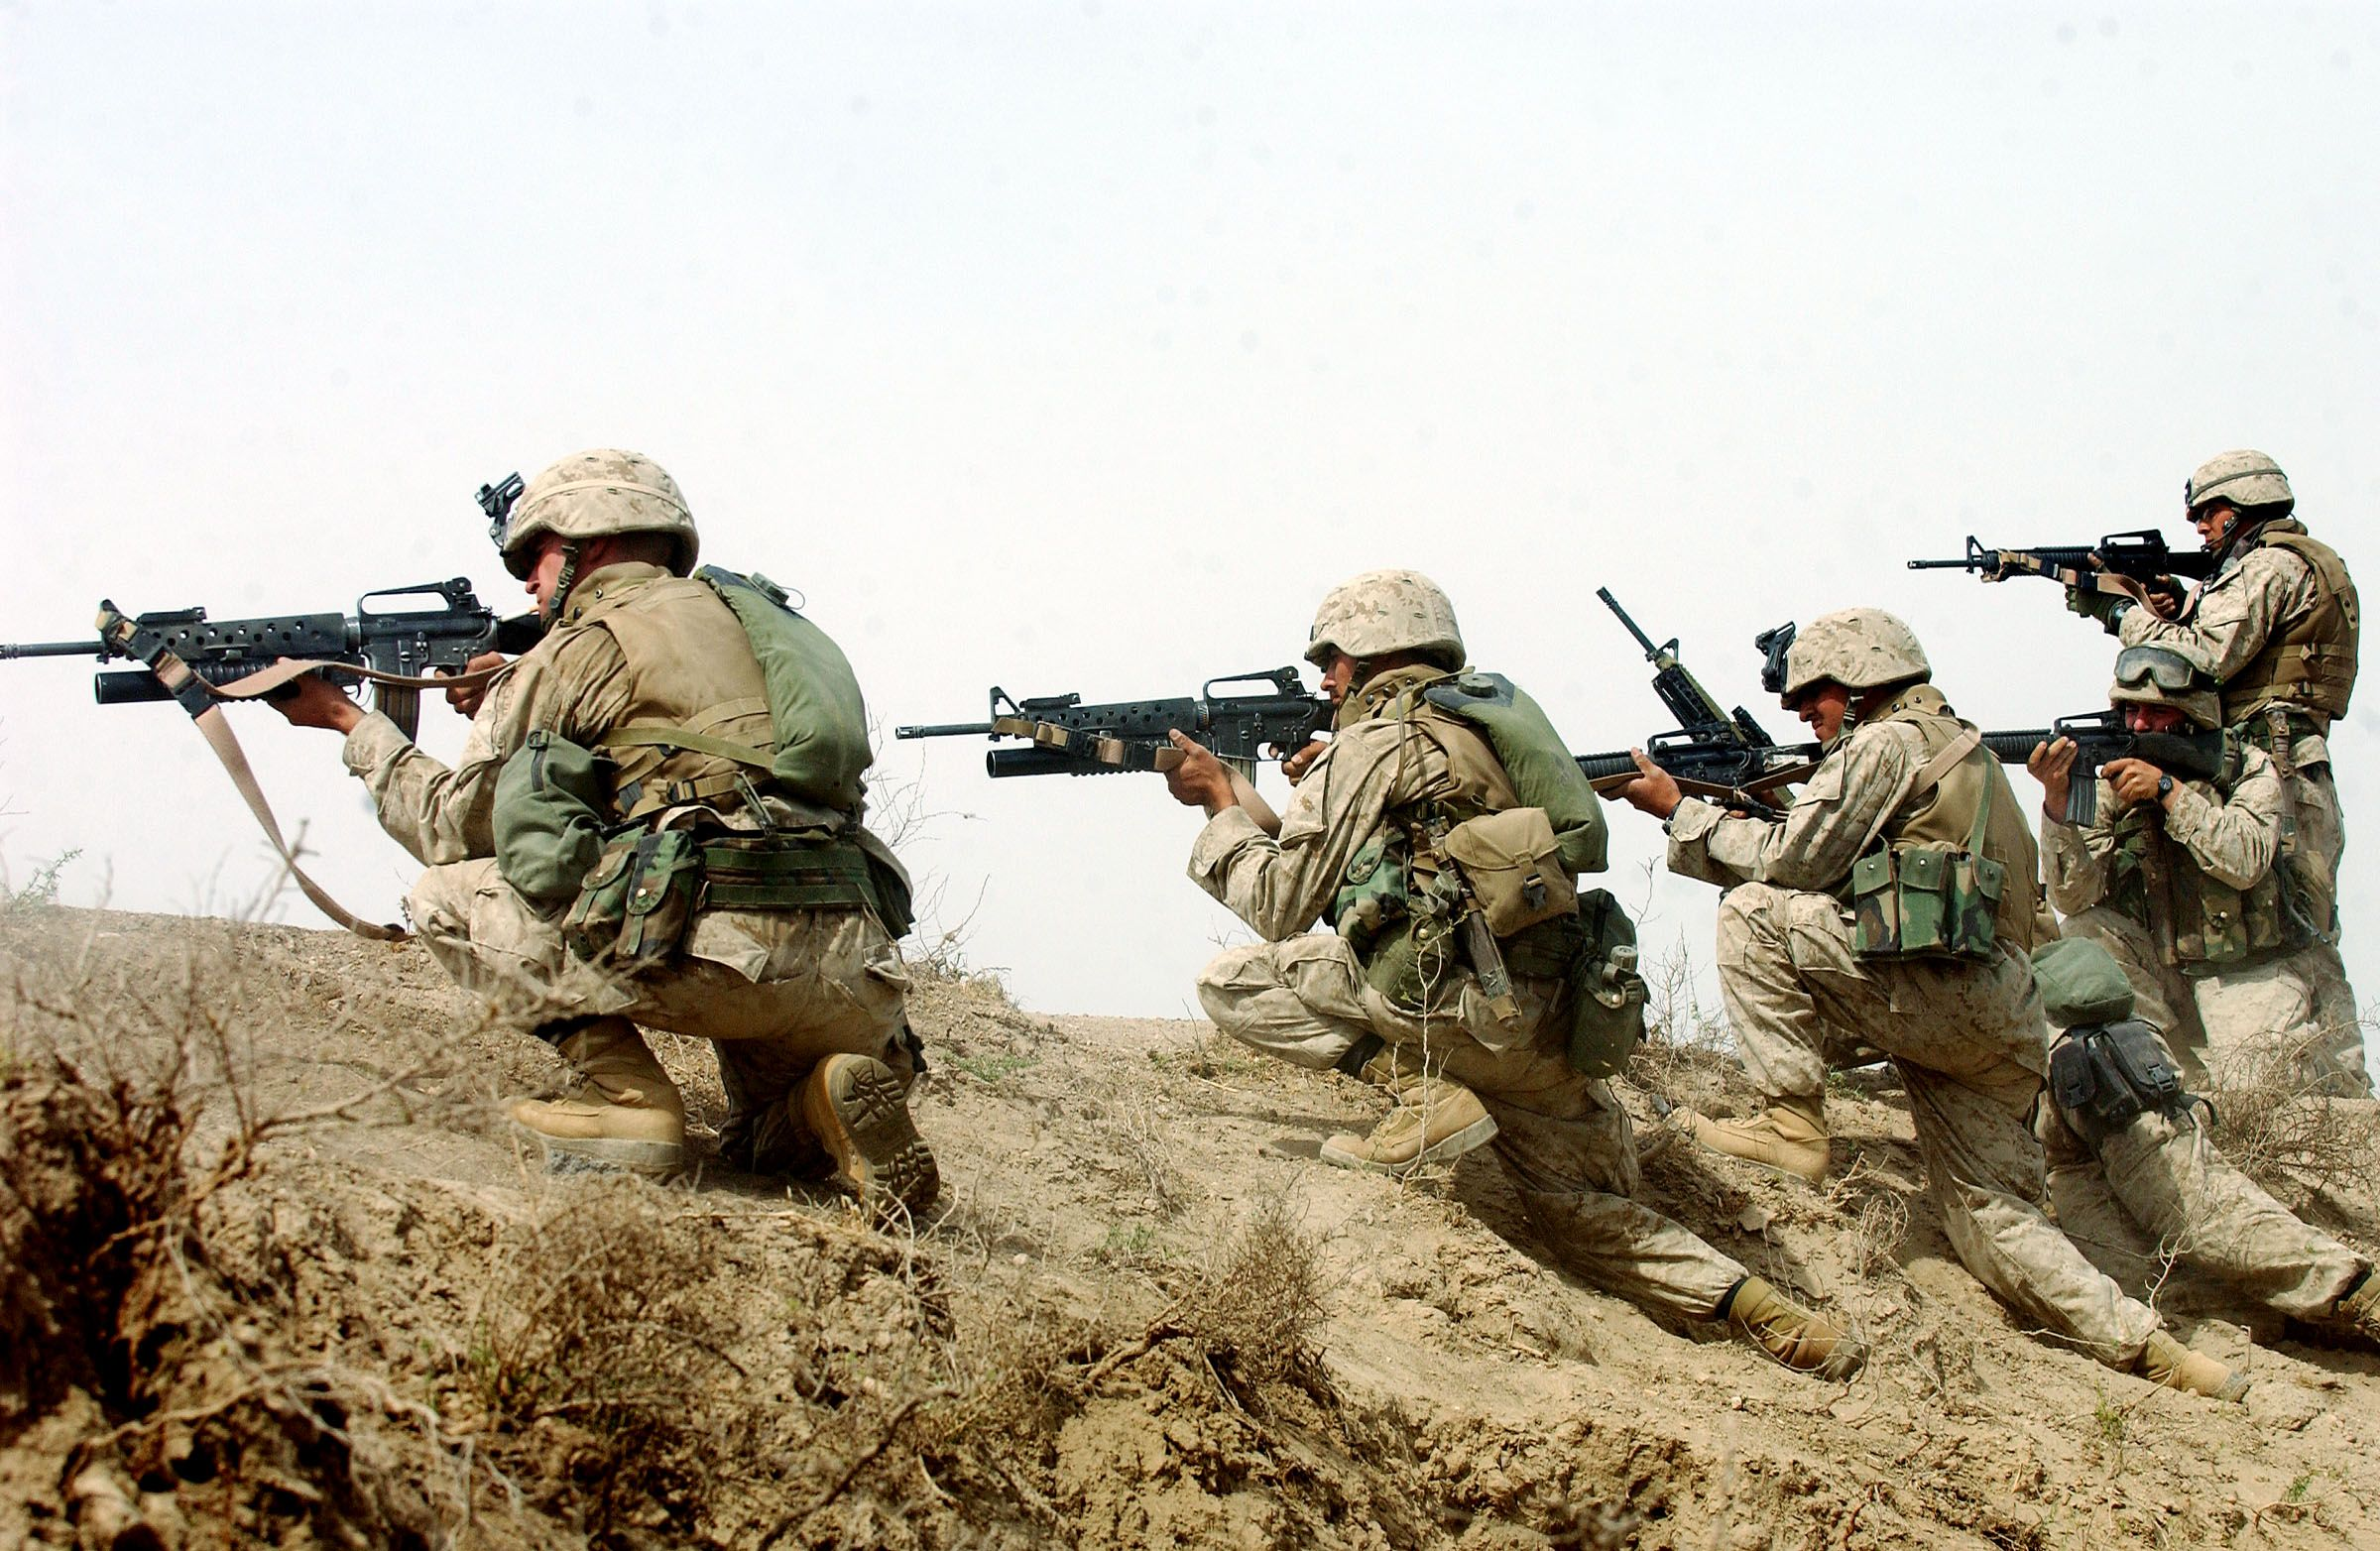 essay about iraq war It is clear that the magnitudes and outcomes of the iraq war have had adversative effects on the united states and even worse on the state of iraq as a country.